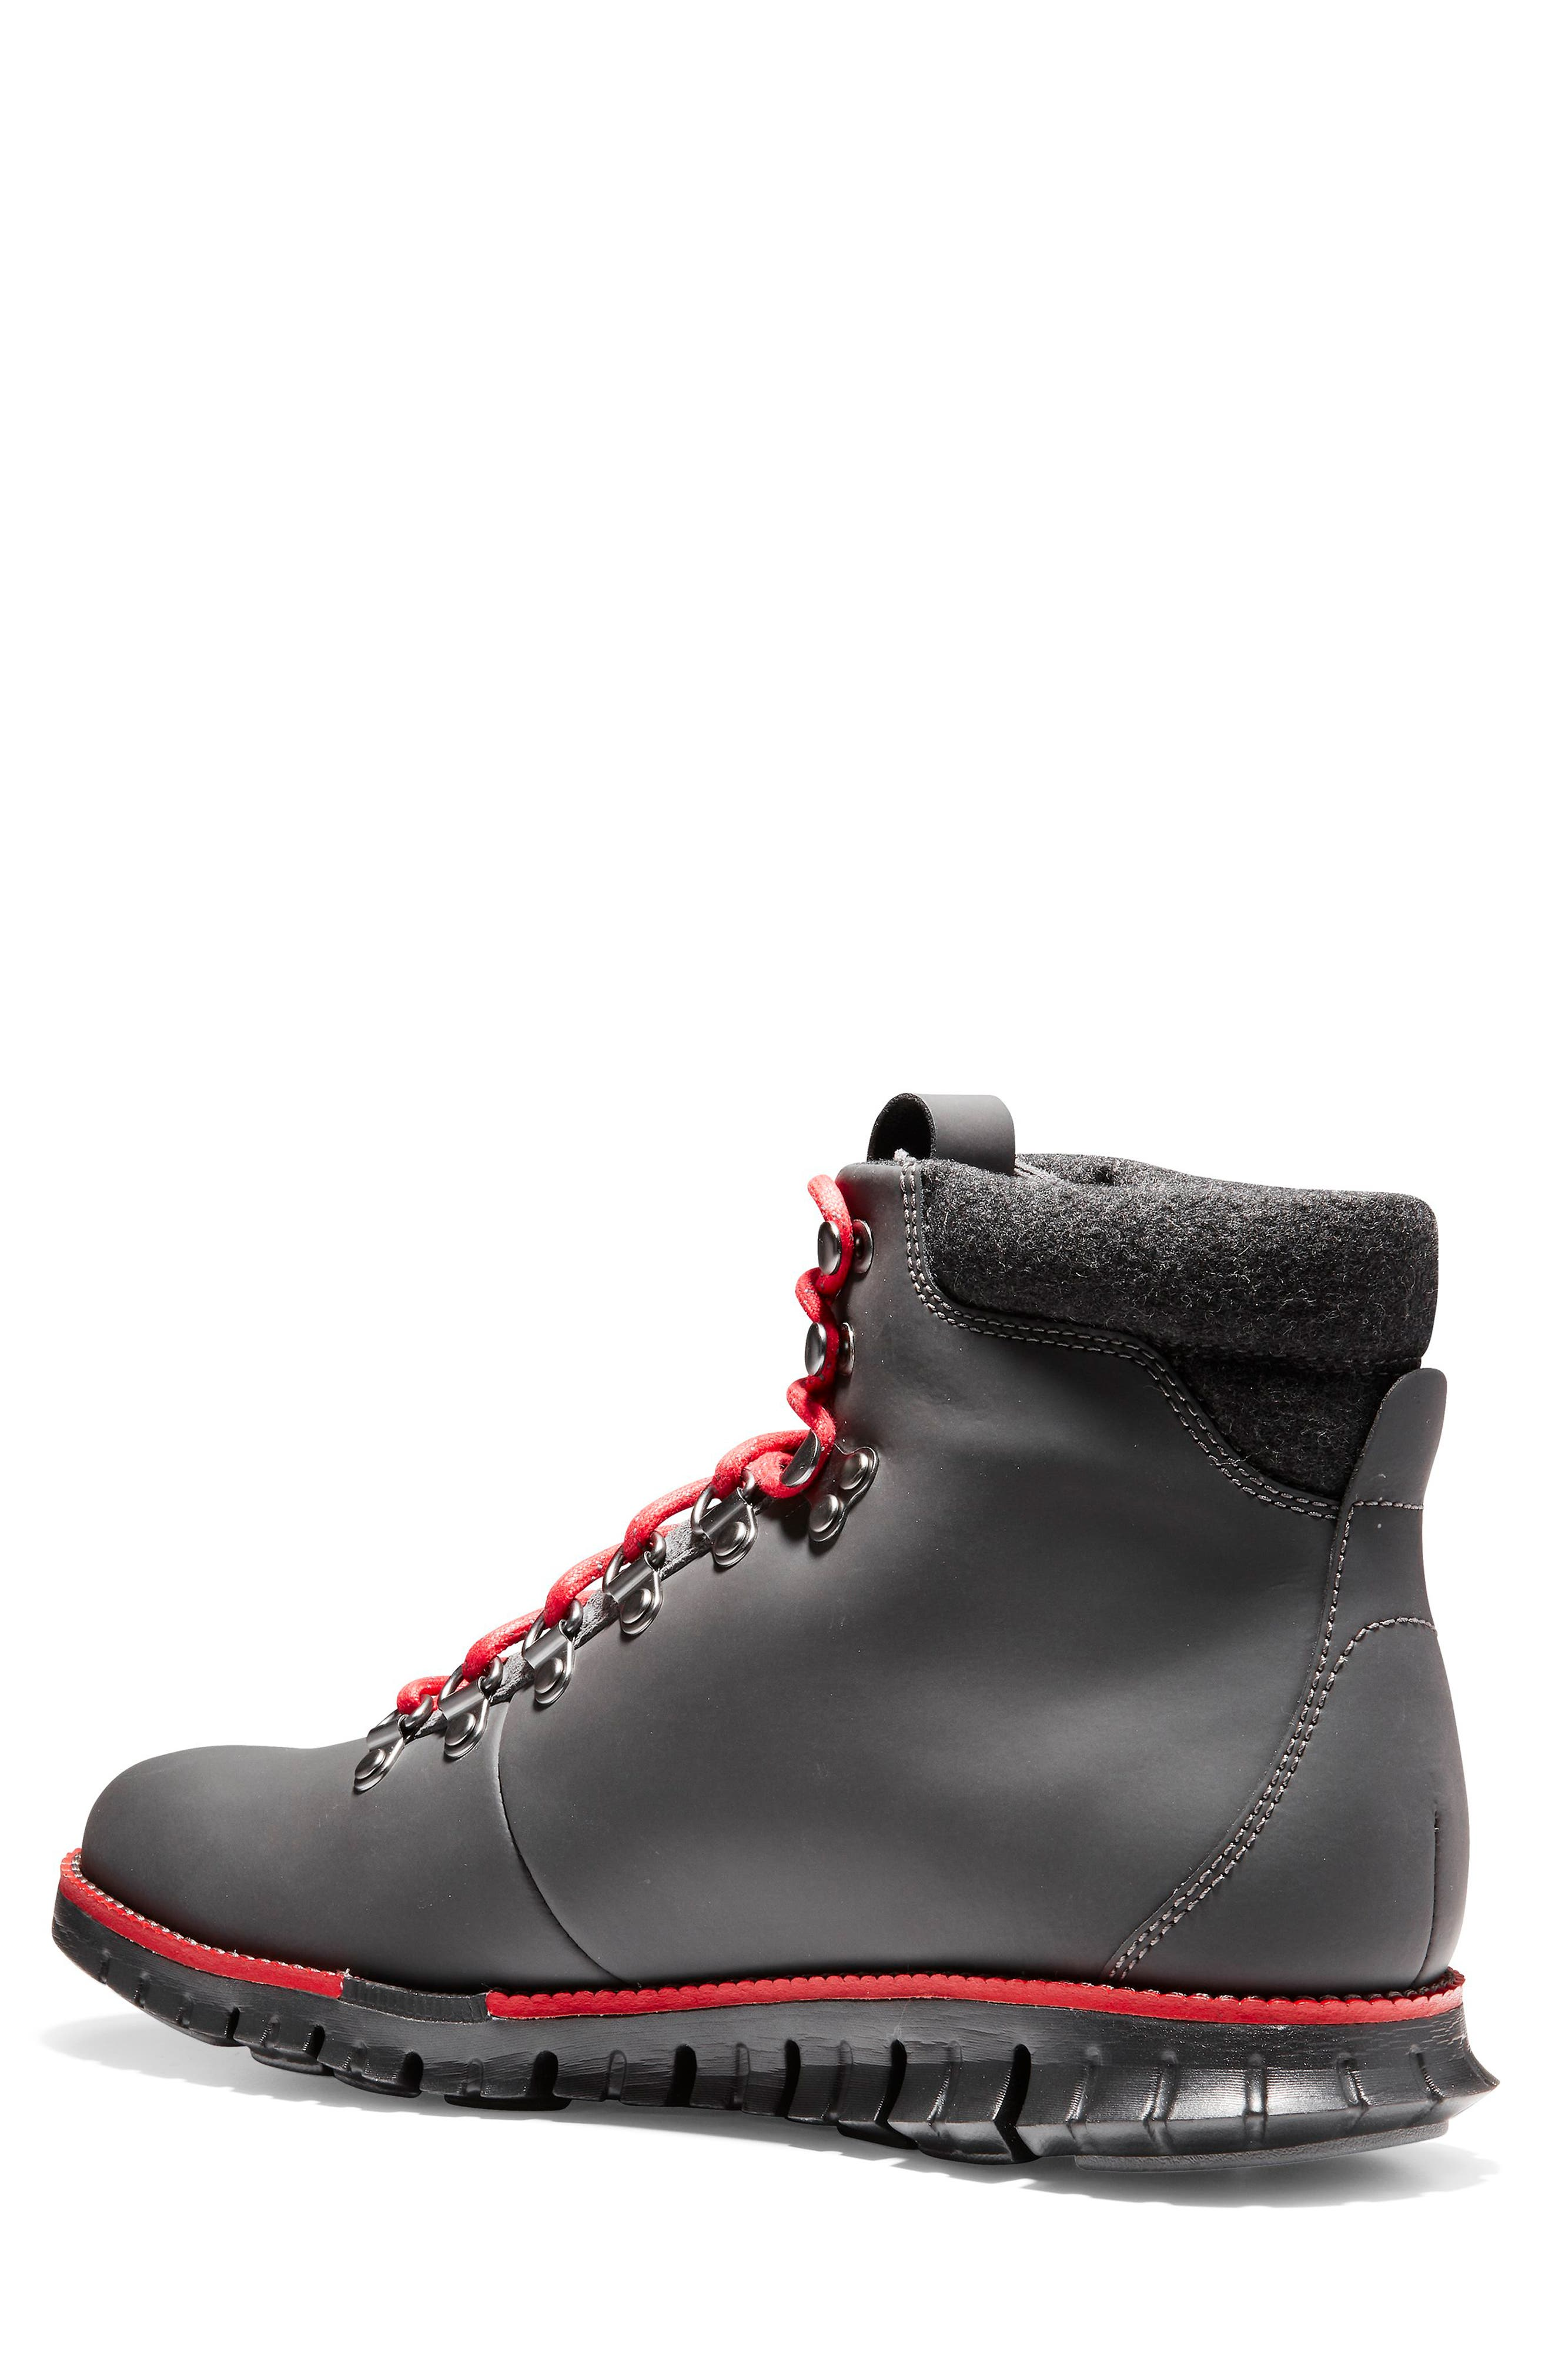 ZeroGrand Water Resistant Hiker Boot,                             Alternate thumbnail 2, color,                             MAGNET LEATHER